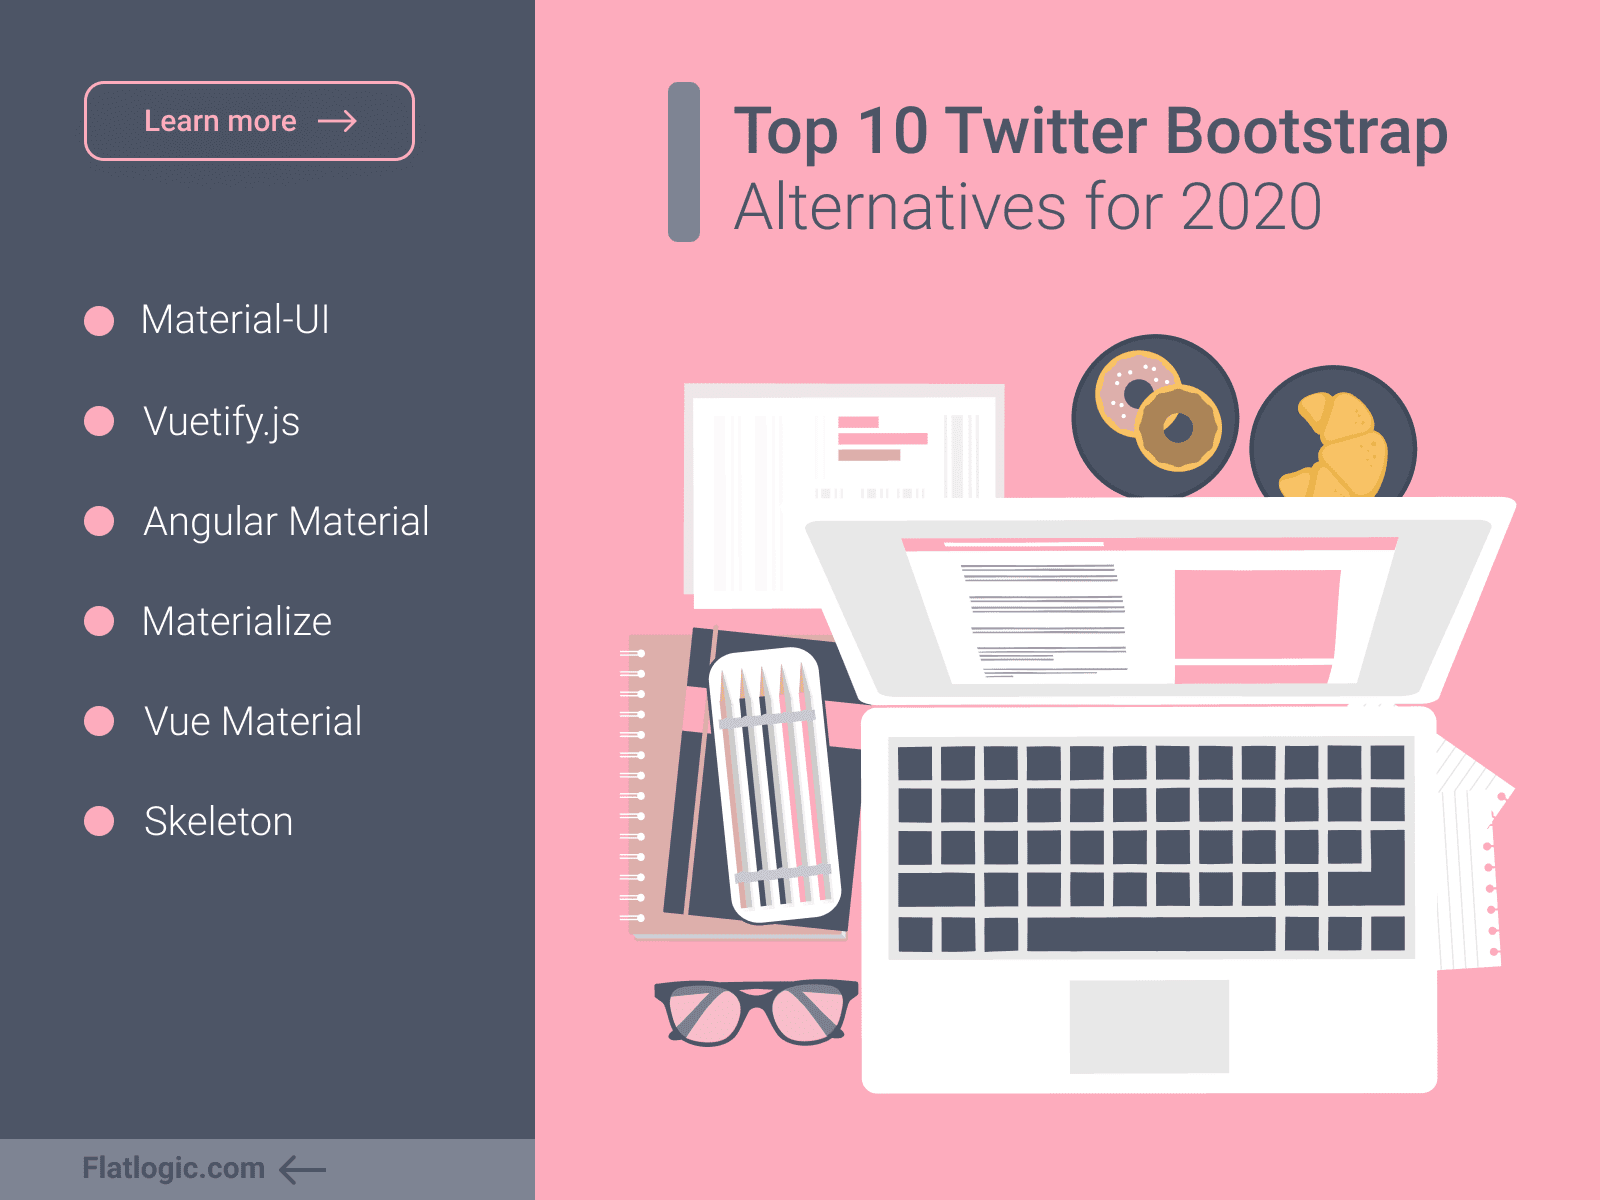 Top 10 Twitter Bootstrap Alternatives for 2020